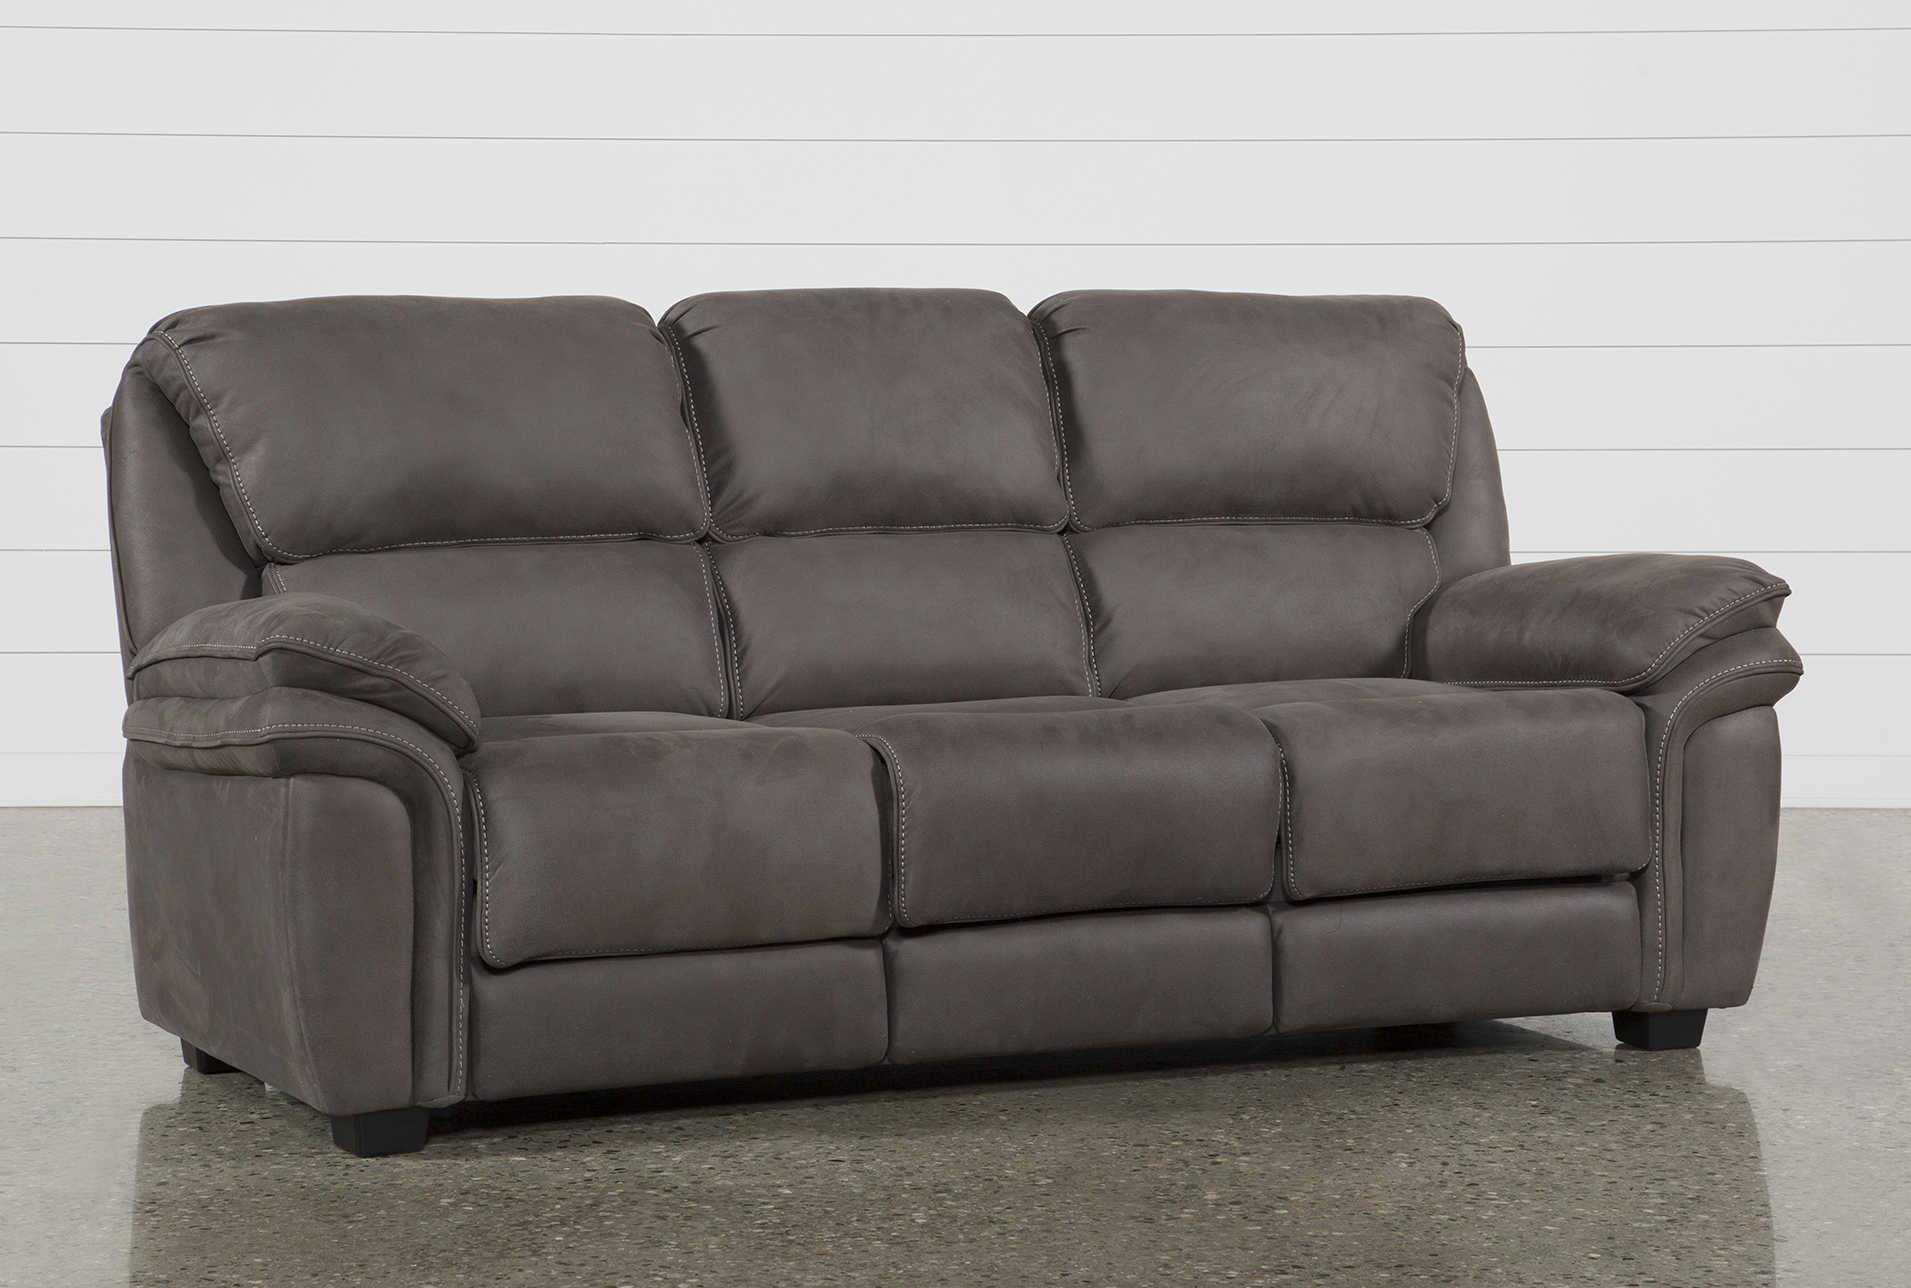 clearance sofa beds sleeper sofas free assembly with delivery rh livingspaces com clearance furniture sofa beds argos clearance sofa beds